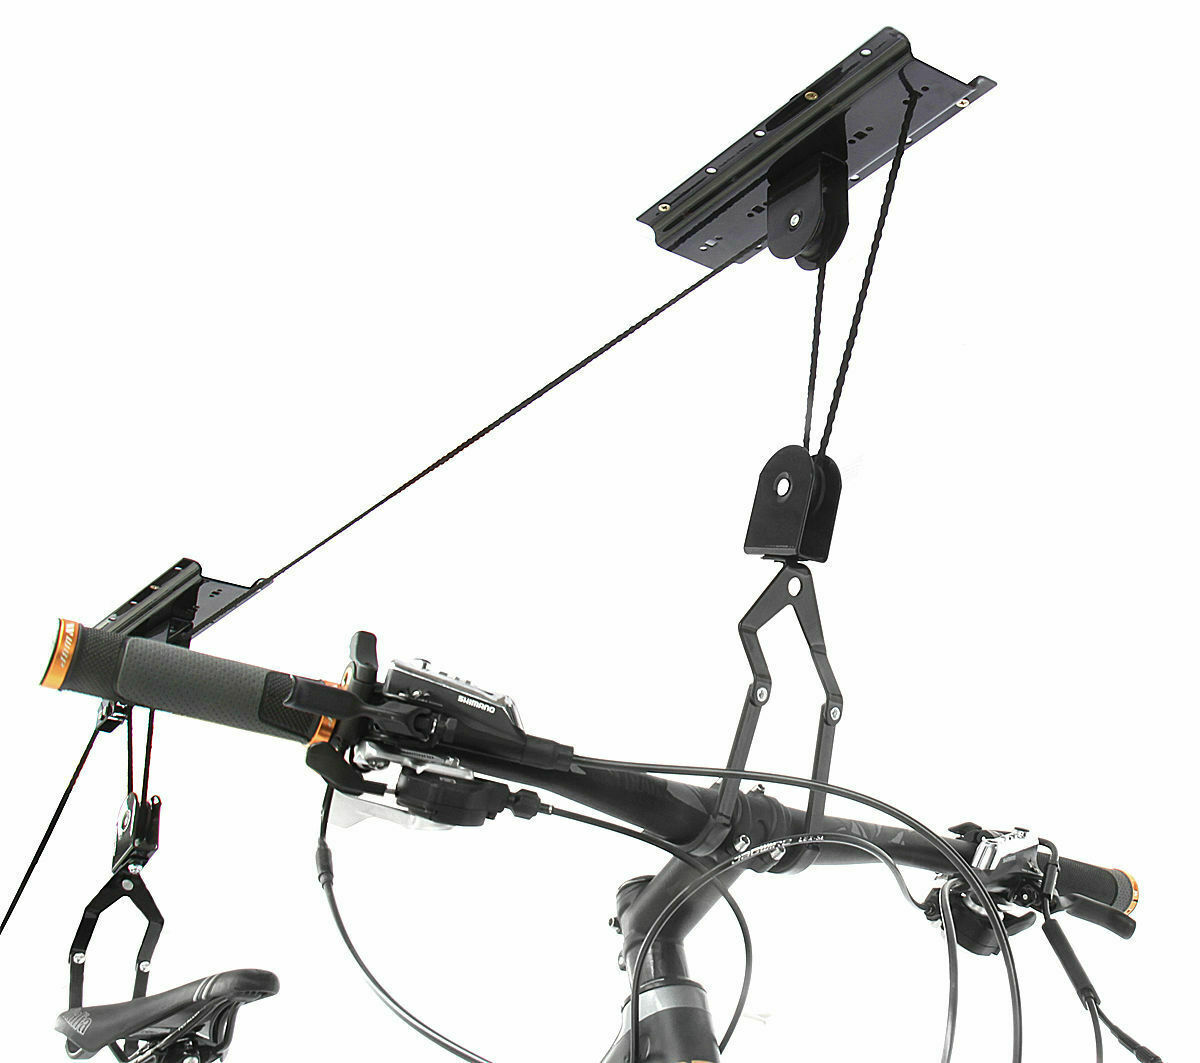 Storage Hoist Surfboard Kayak Bicycle Rack Bike Lift